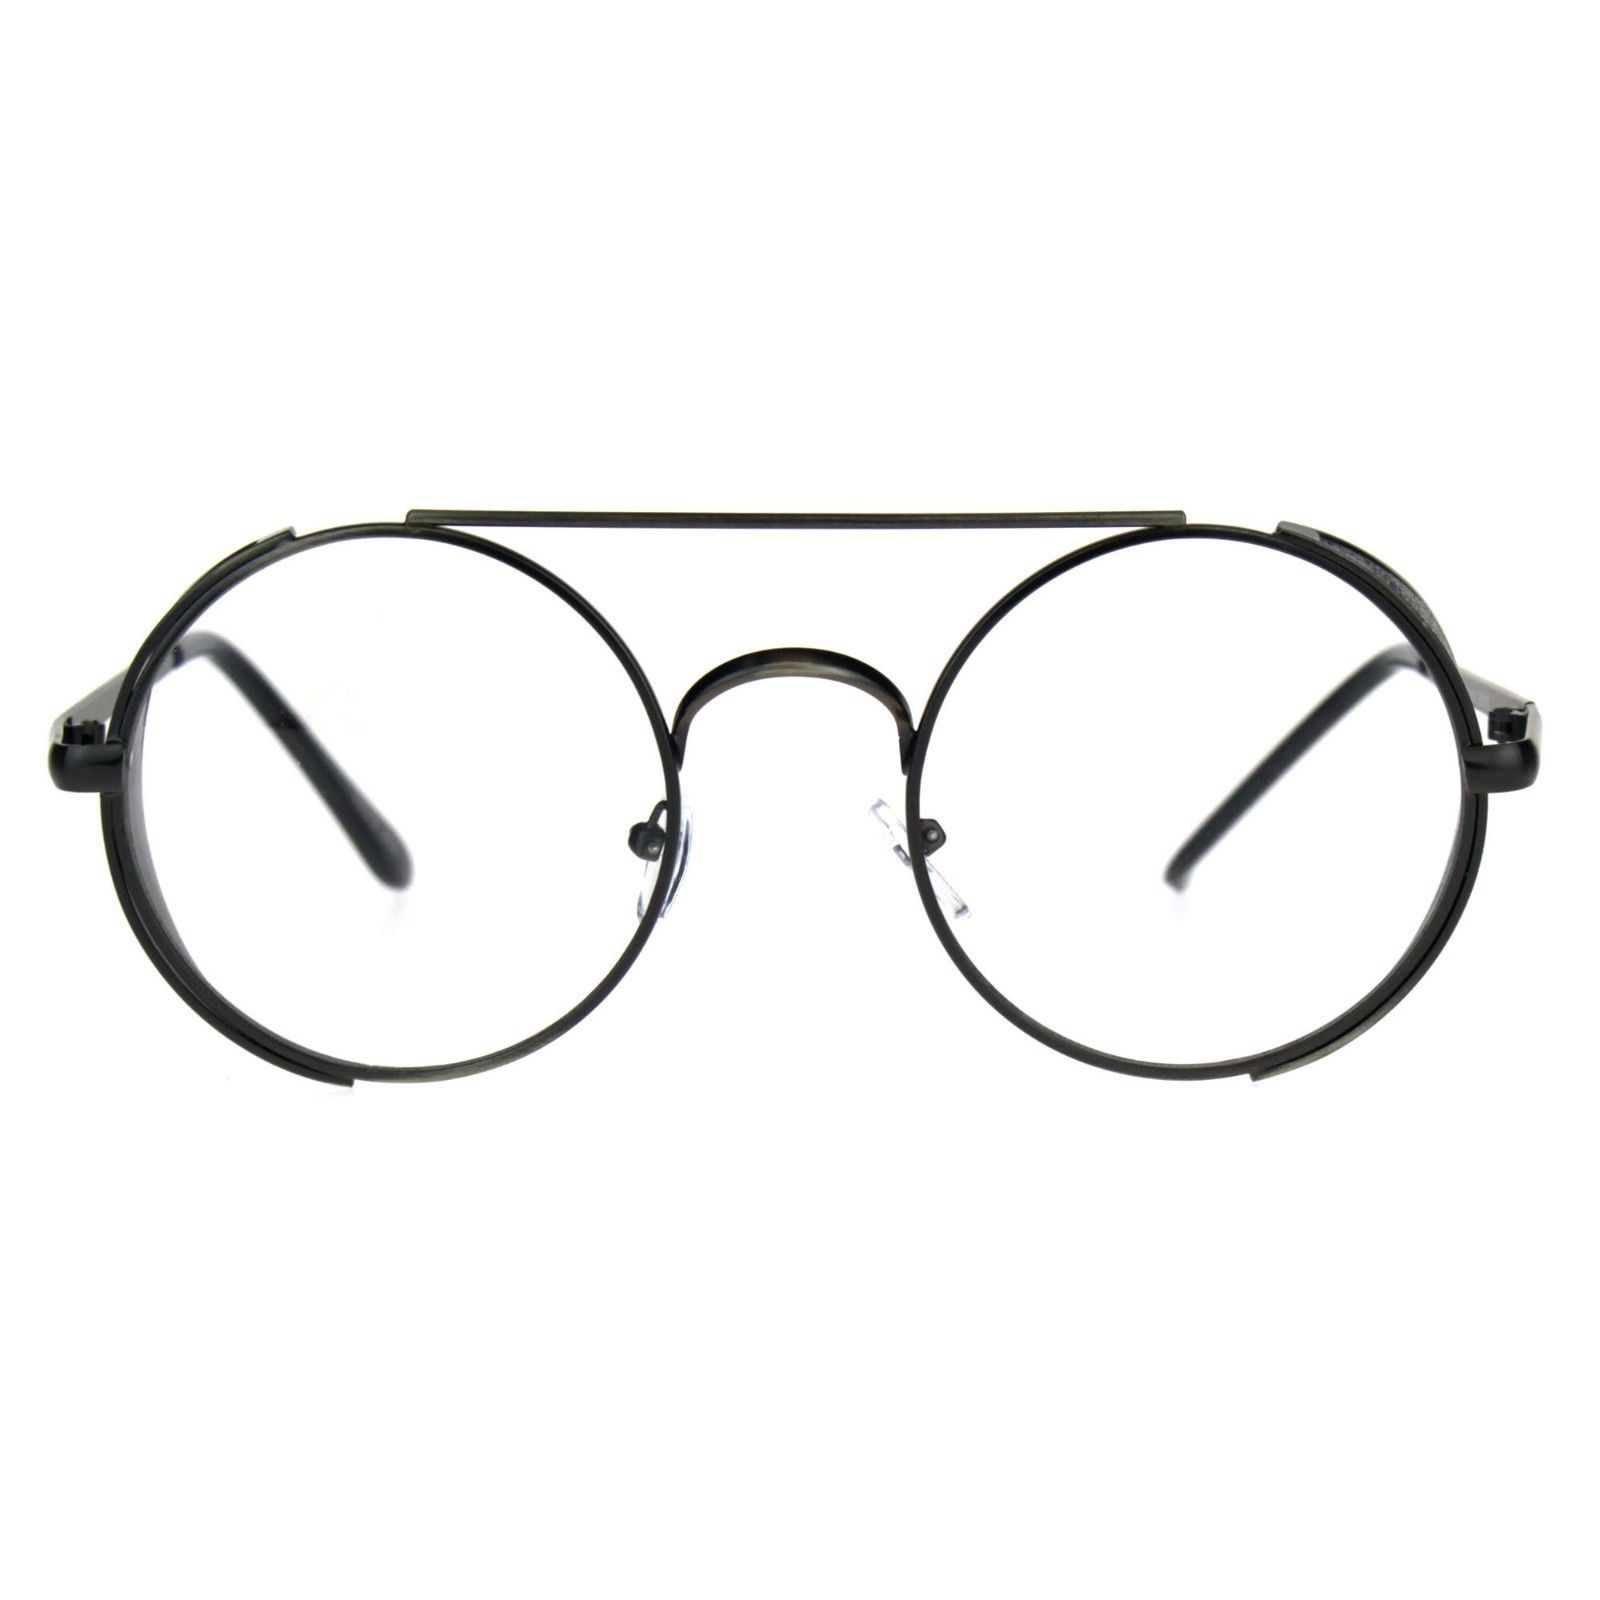 Steampunk Side Cover Clear Lens Glasses Round Metal Flat Top Bridge UV 400